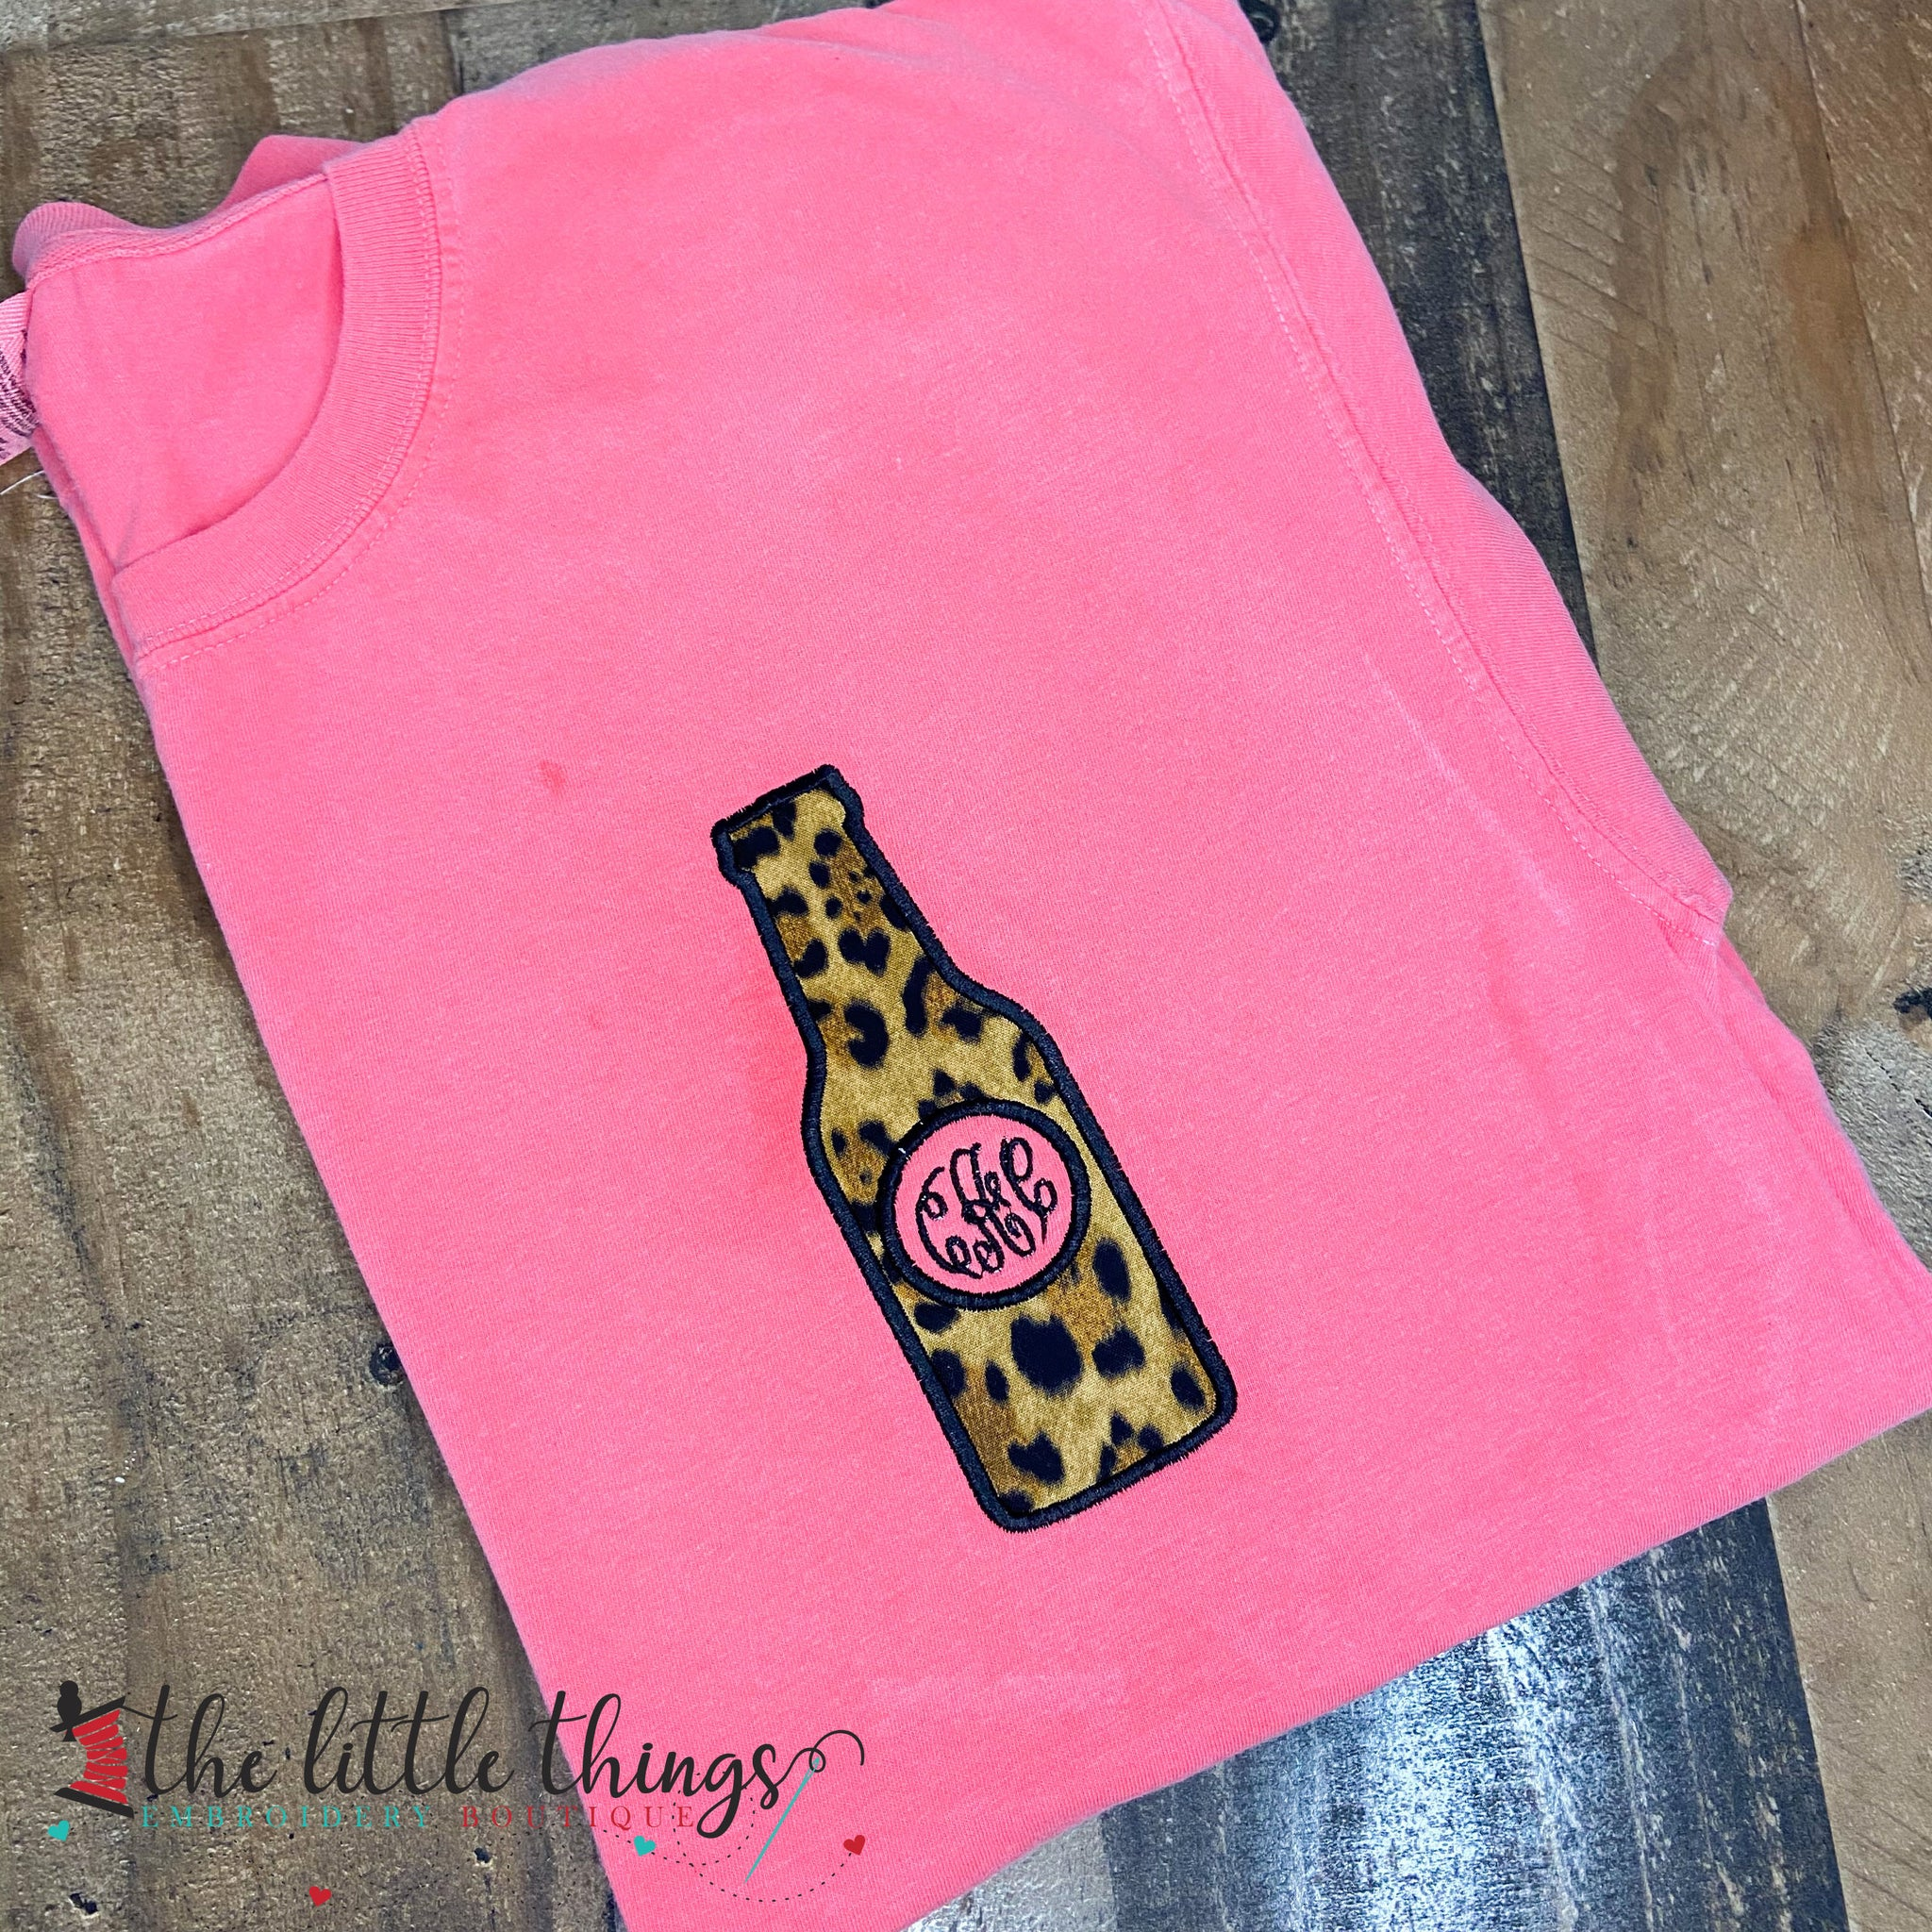 Leopard Beer Bottle Monogram Applique Shirt or Sweatshirt